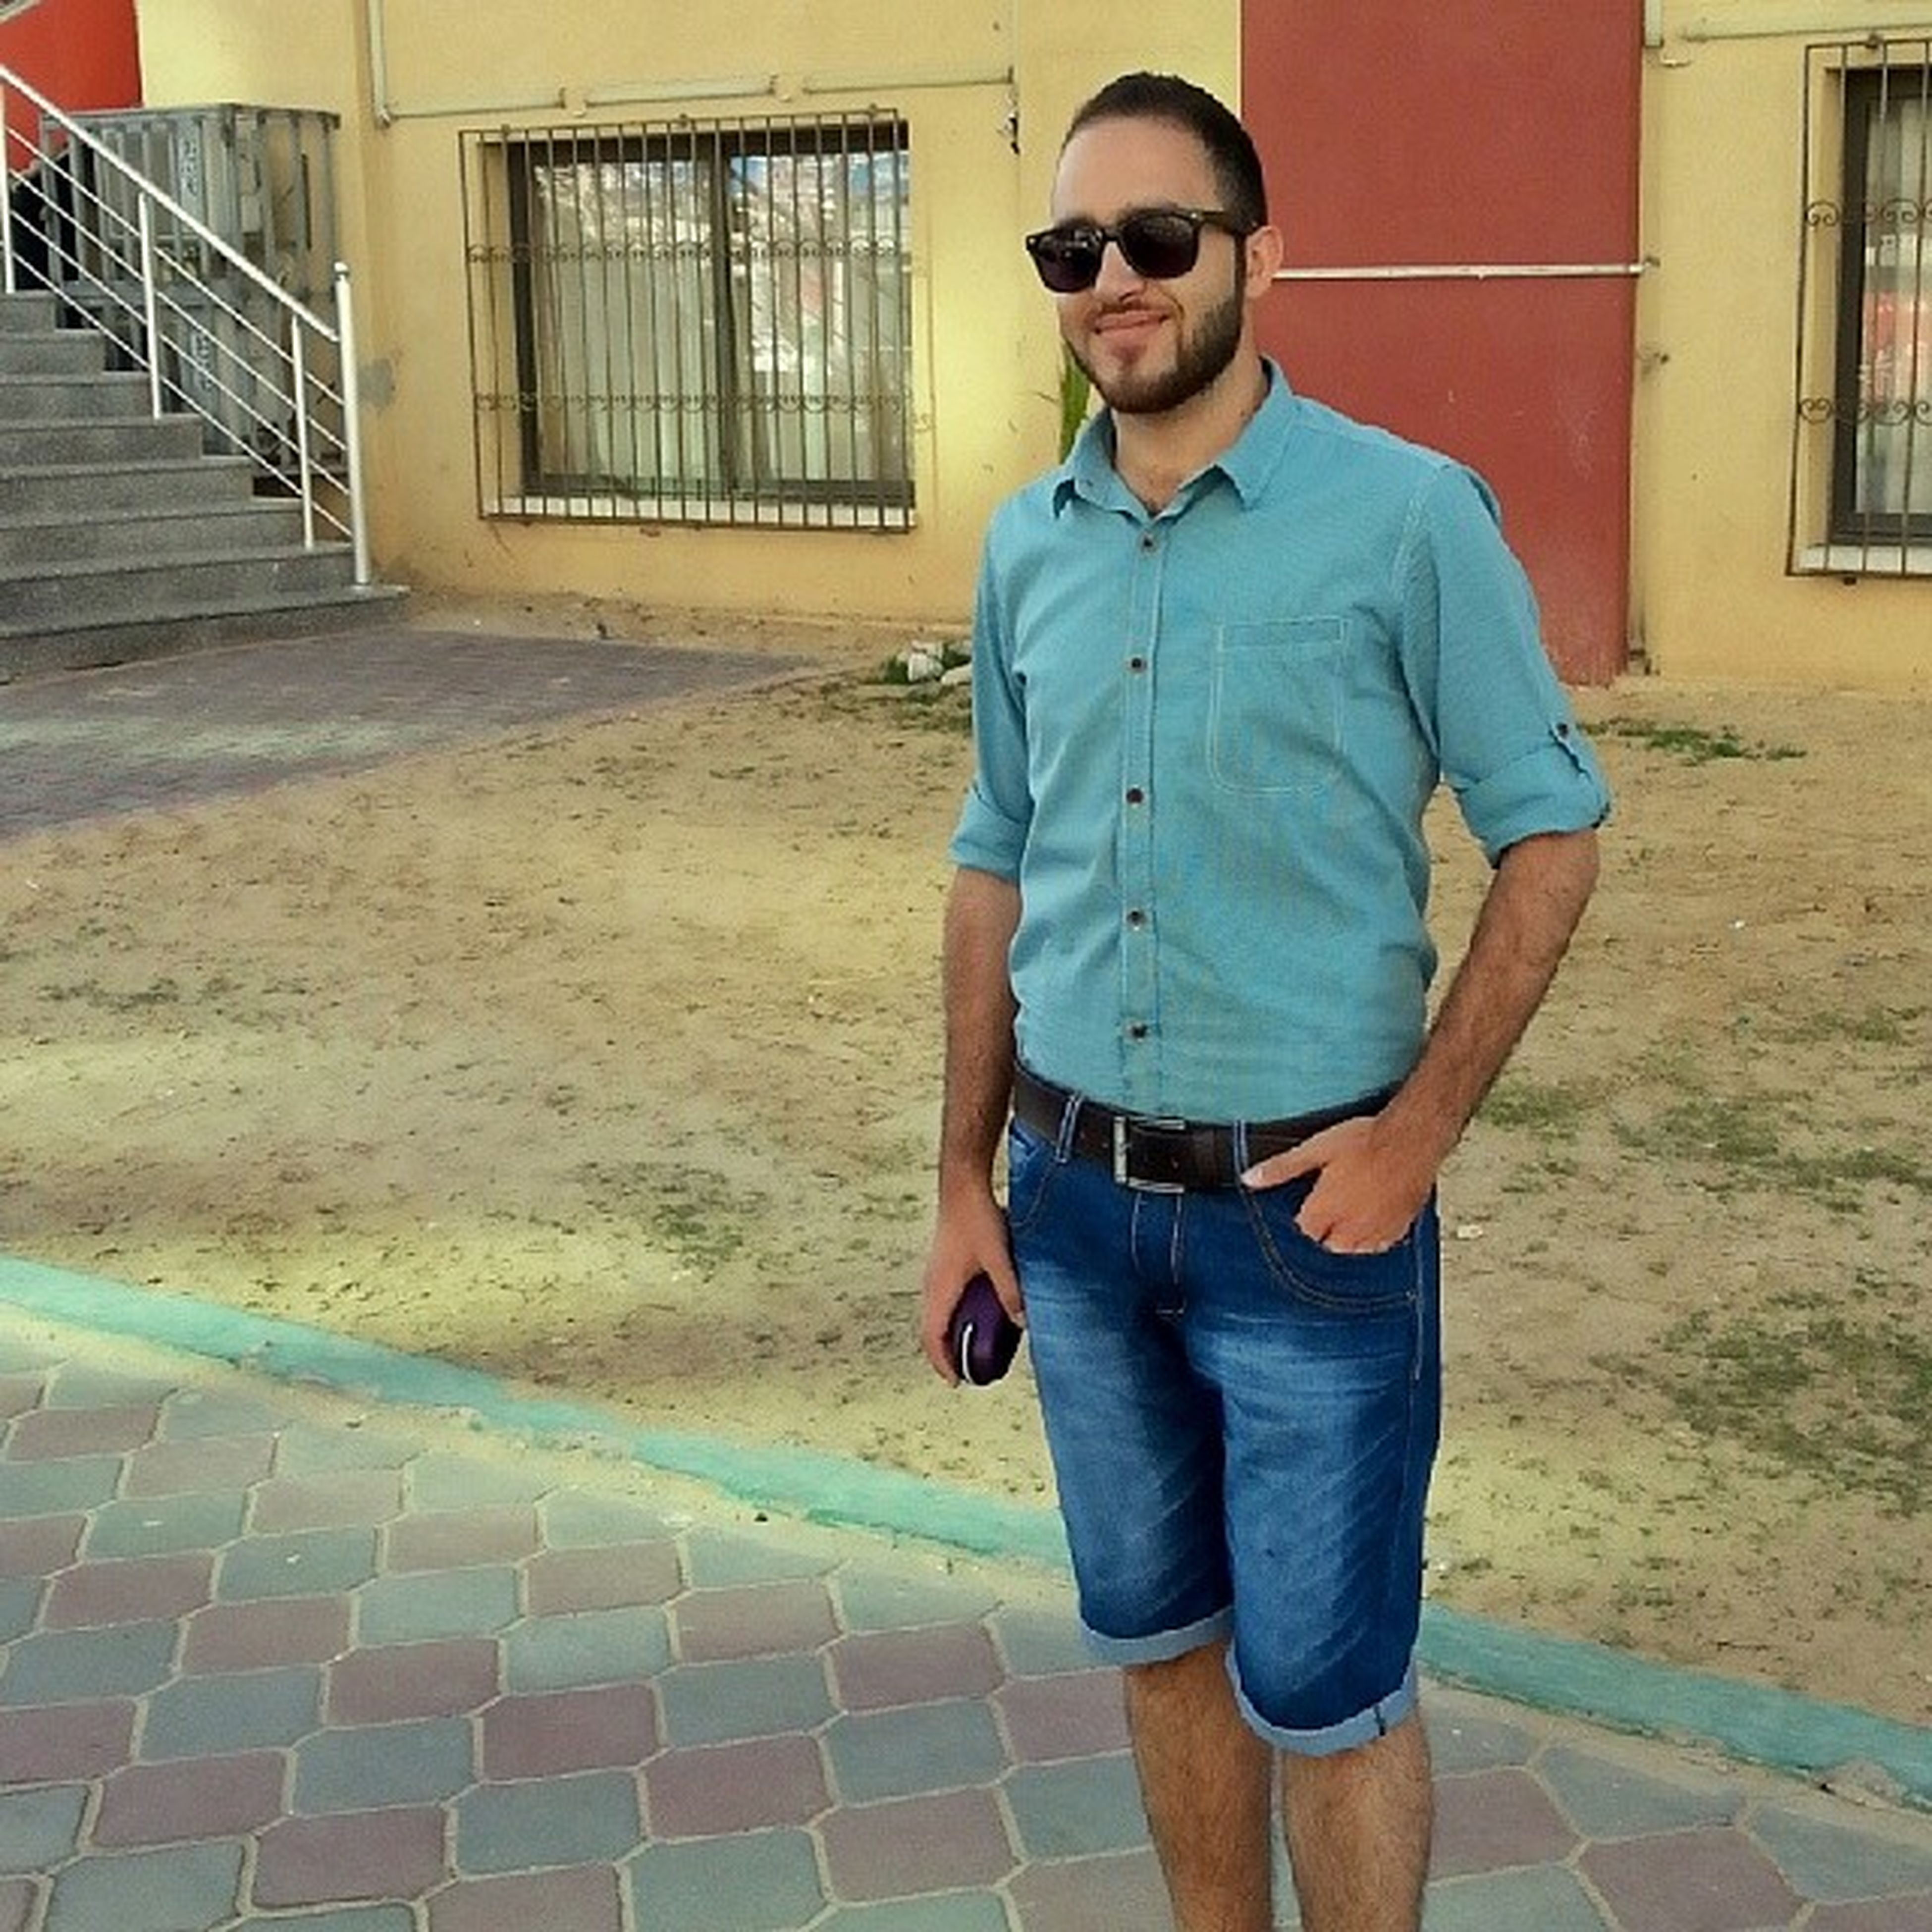 casual clothing, person, building exterior, architecture, built structure, front view, young adult, looking at camera, portrait, lifestyles, standing, young men, full length, leisure activity, sunglasses, jacket, three quarter length, hands in pockets